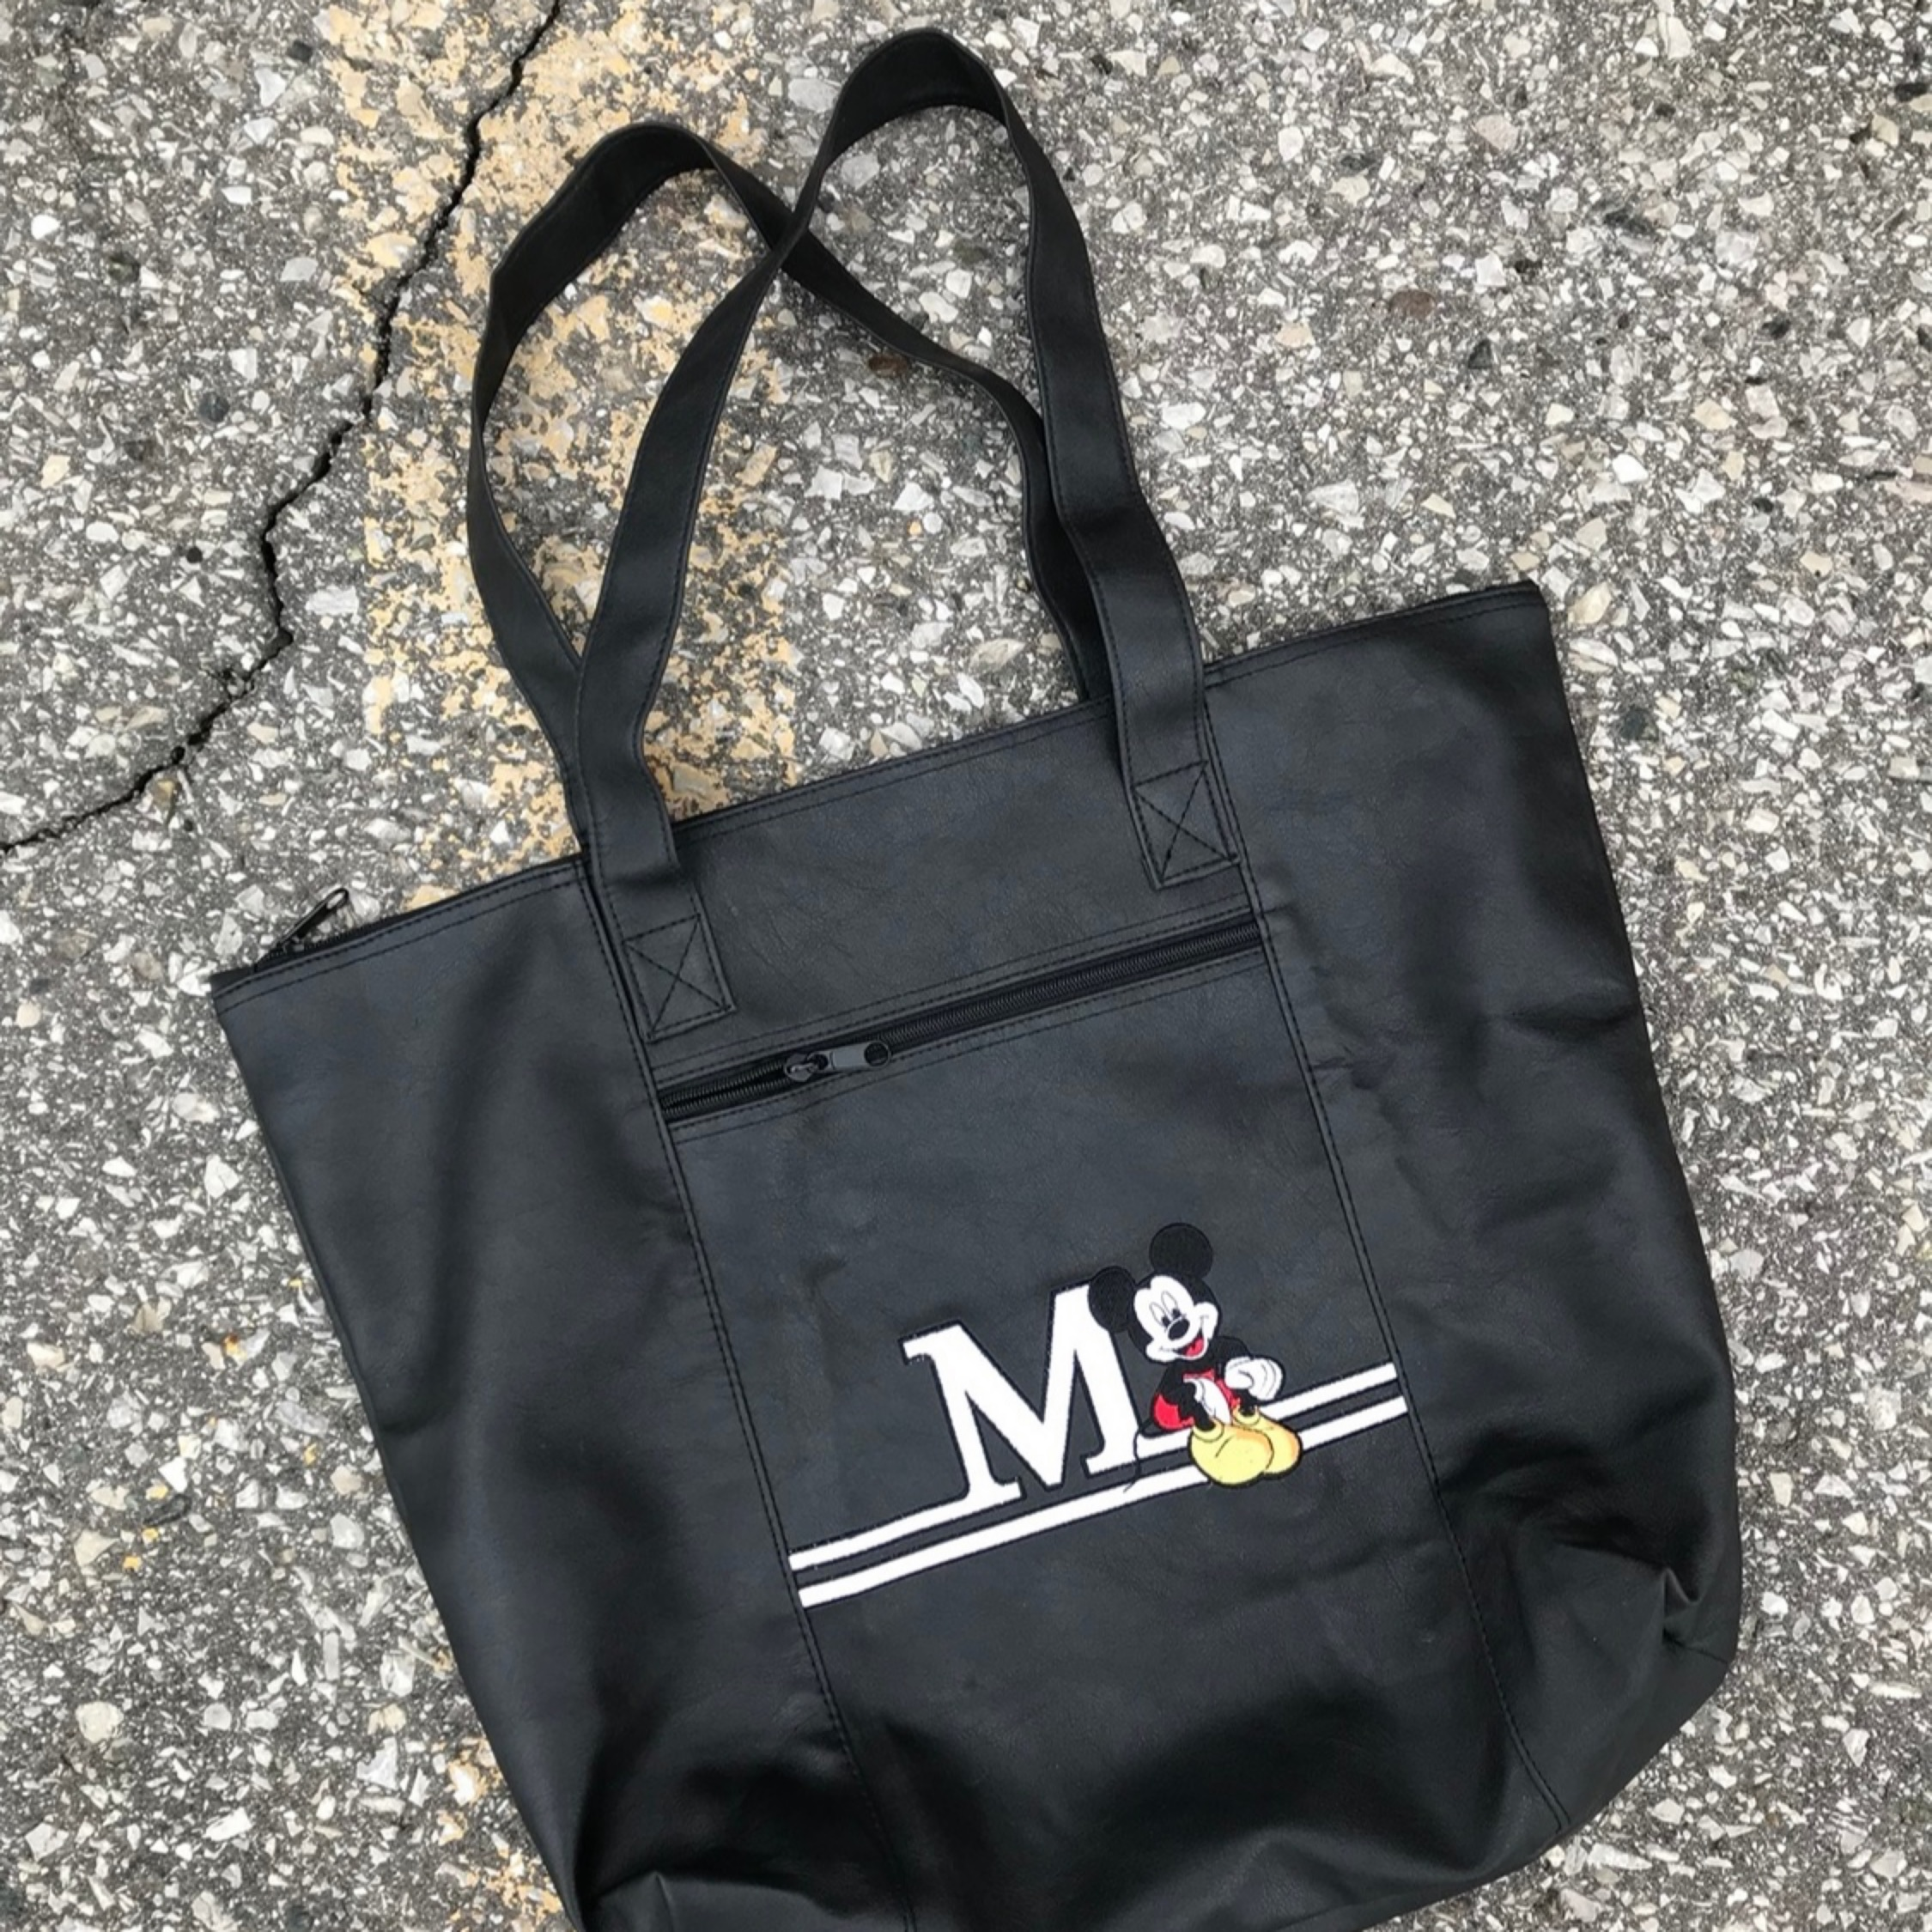 Vintage 90S Disney Mickey Mouse Tote Bag